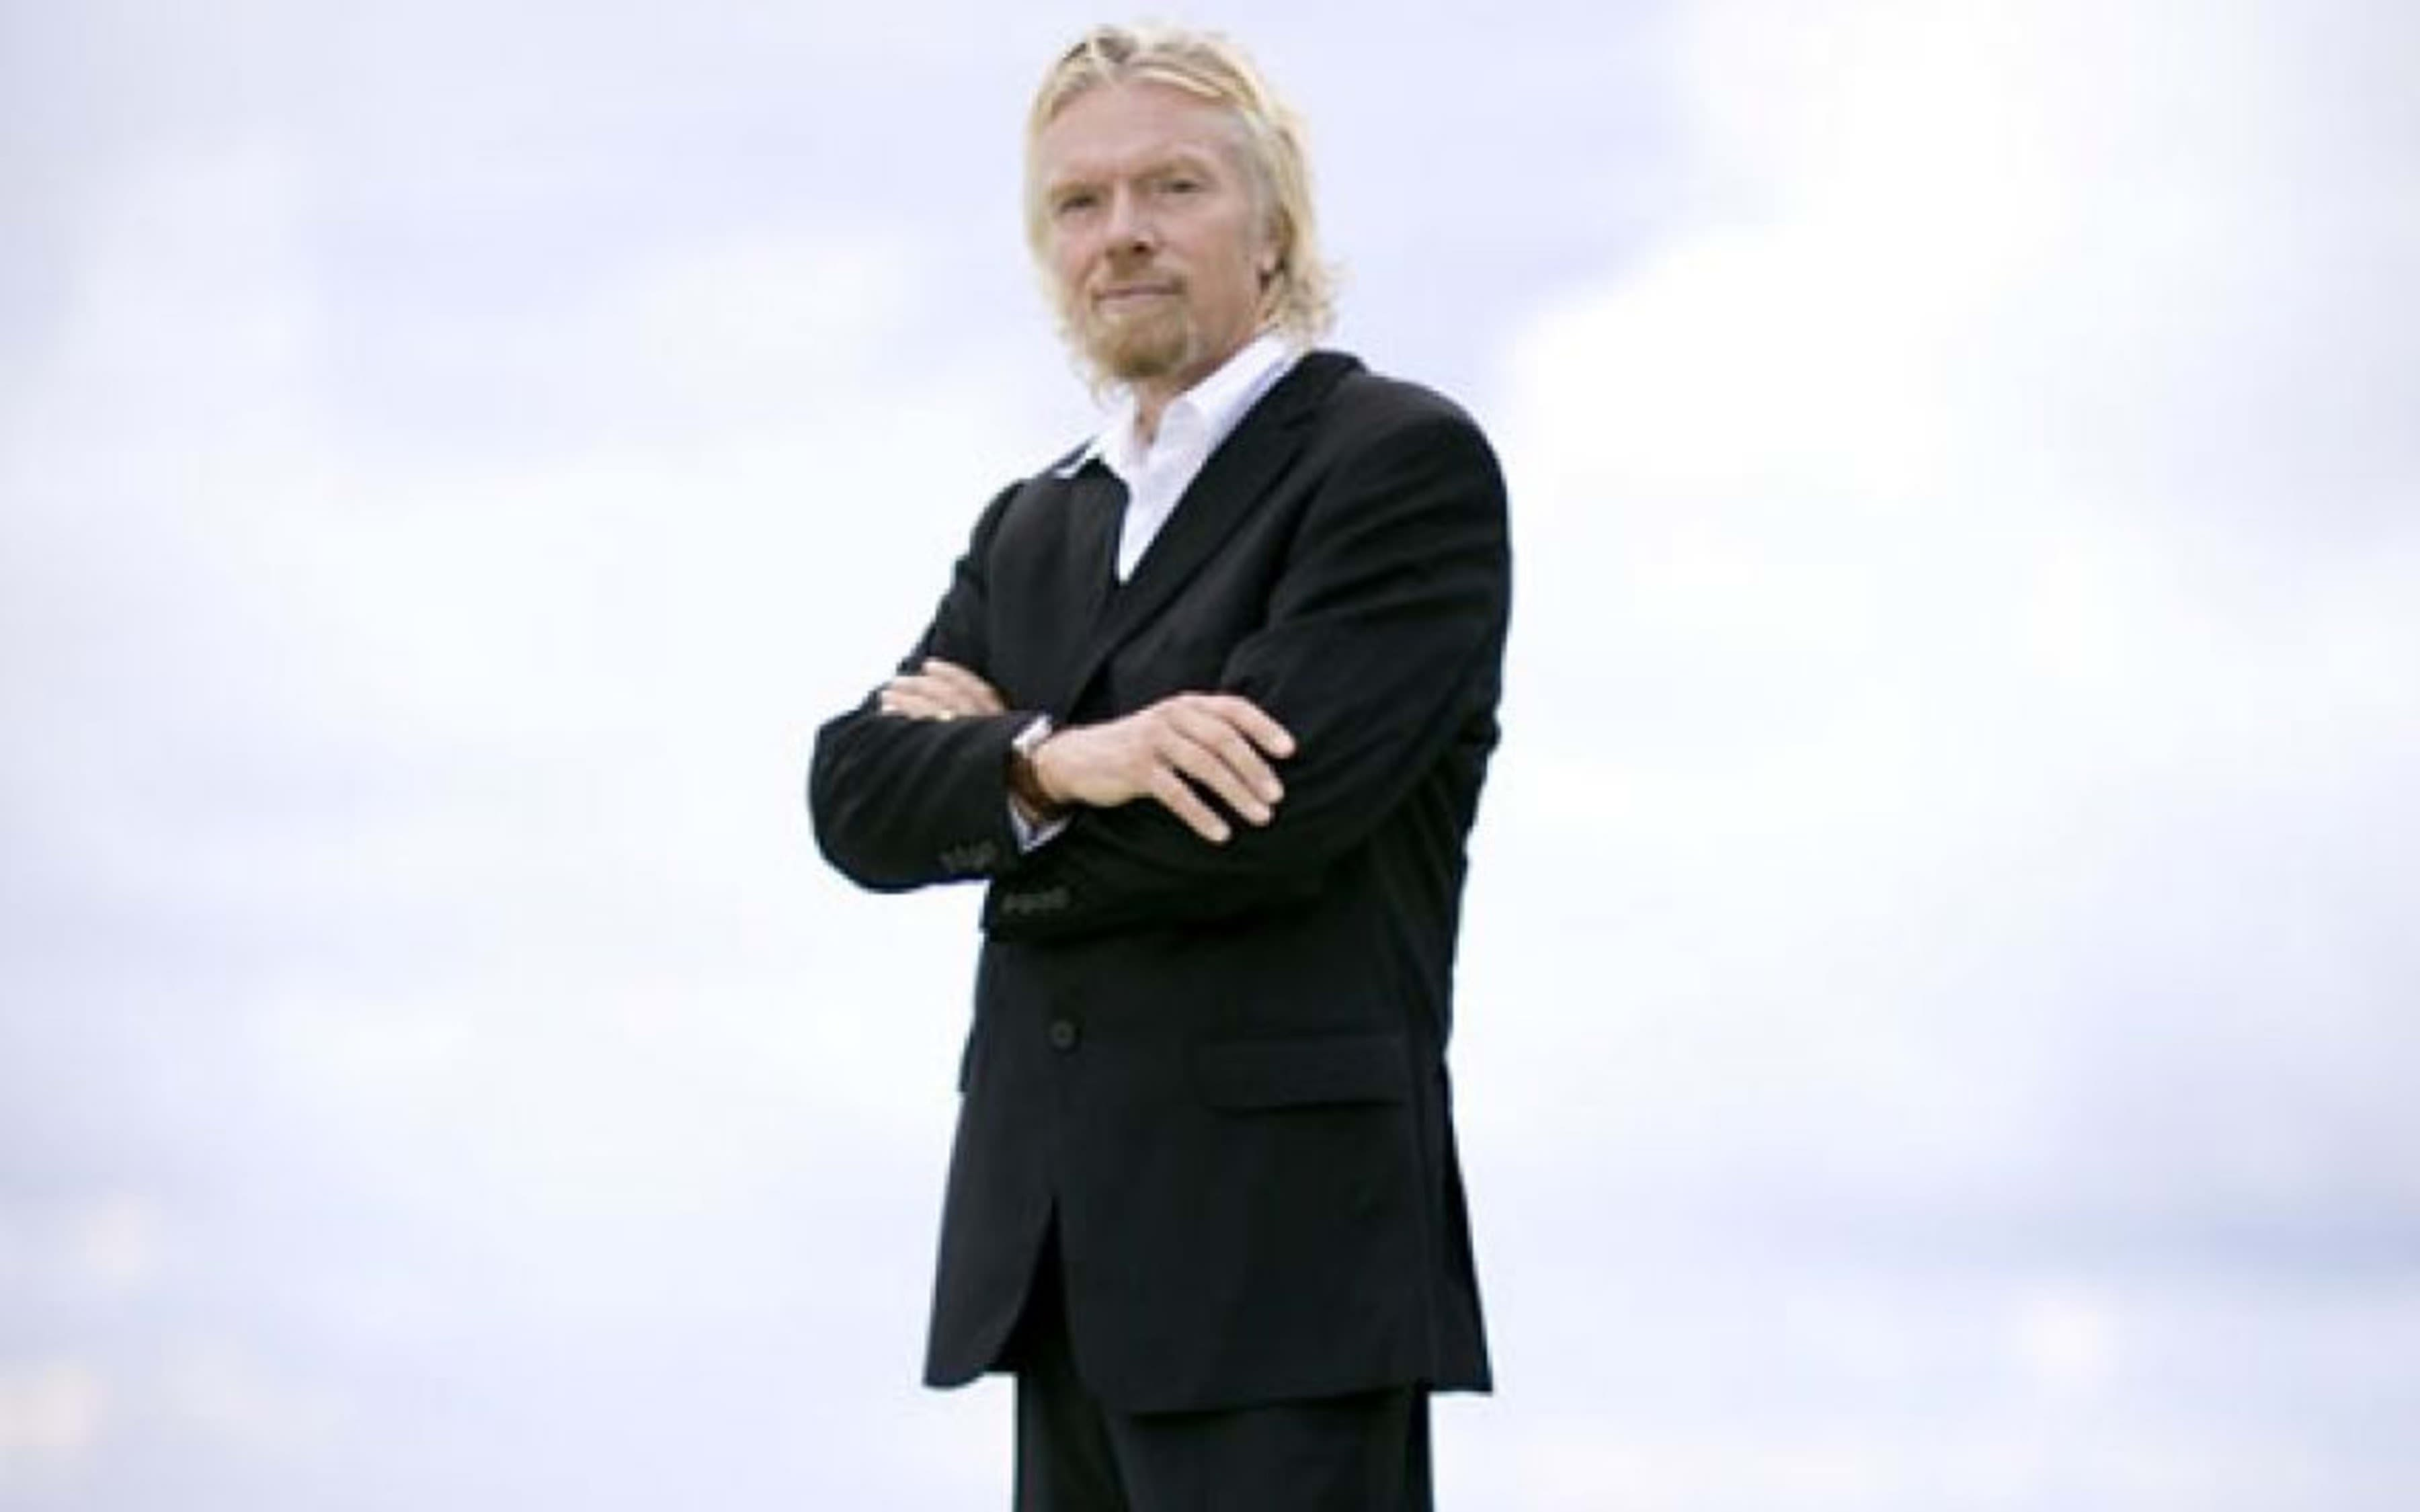 Richard Branson, arms folded, standing looking at the camera